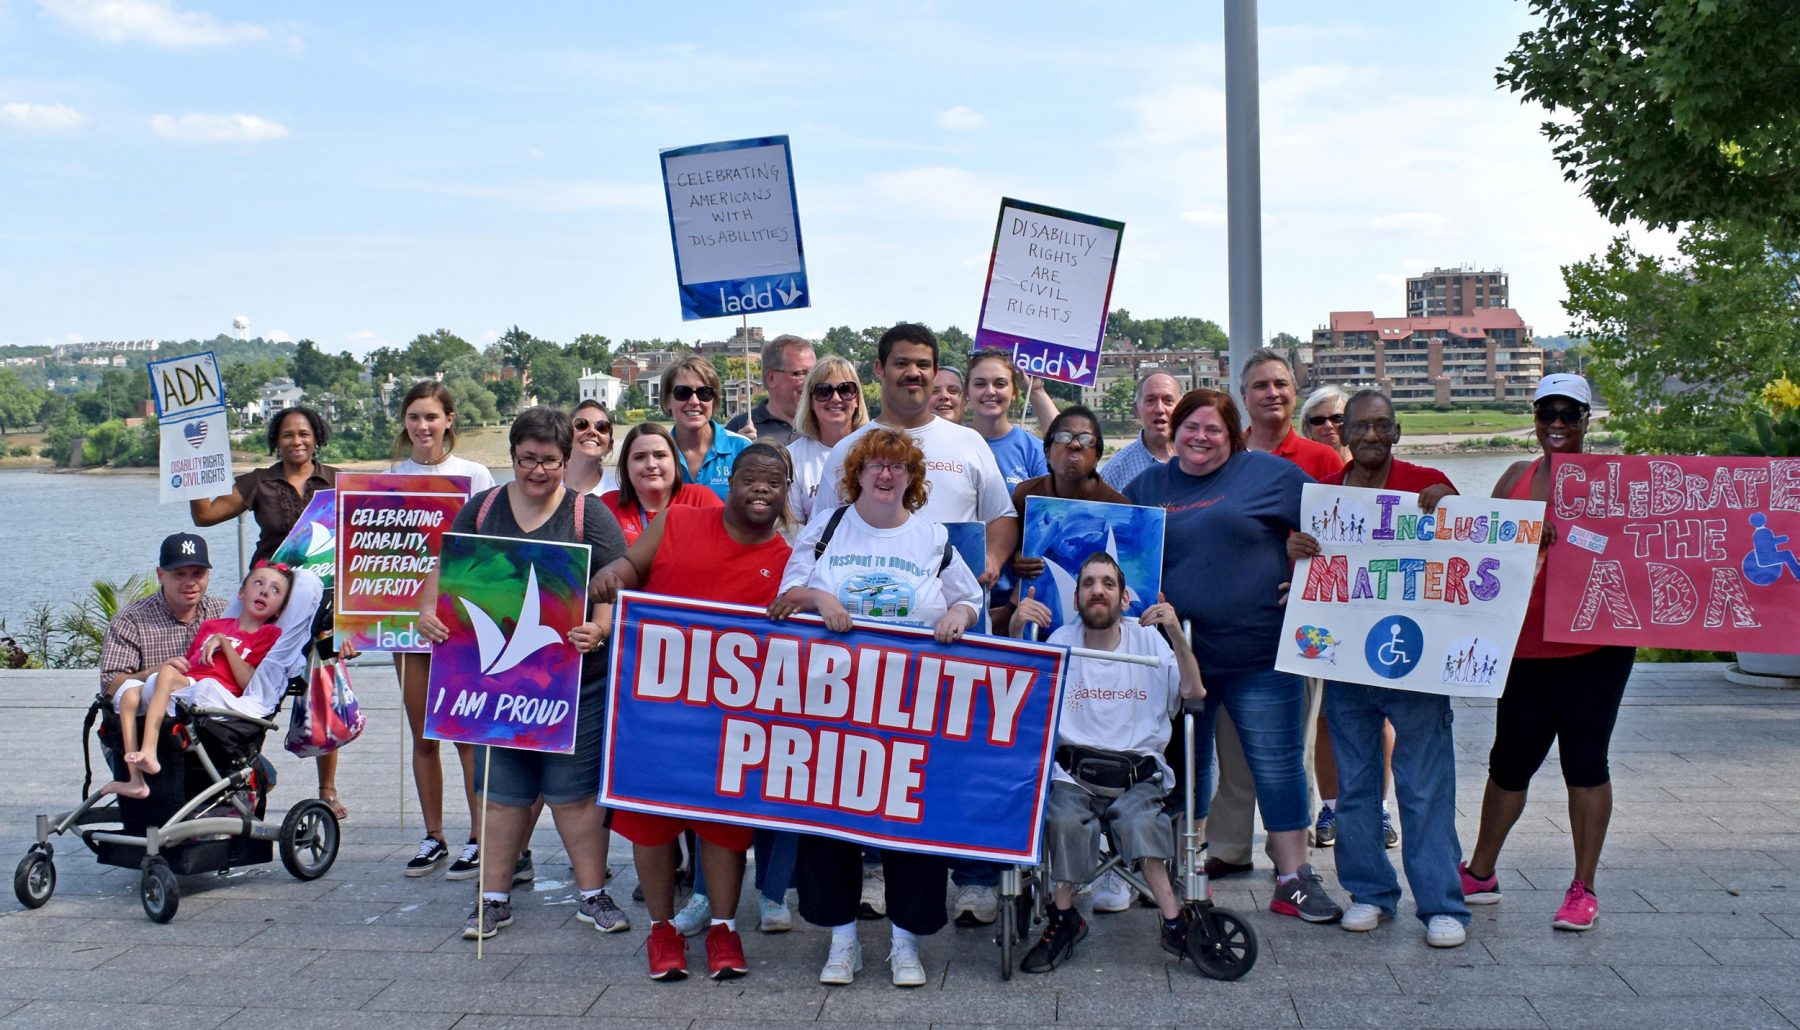 A large group of people pose with a sign that says disability pride during by the riverfront